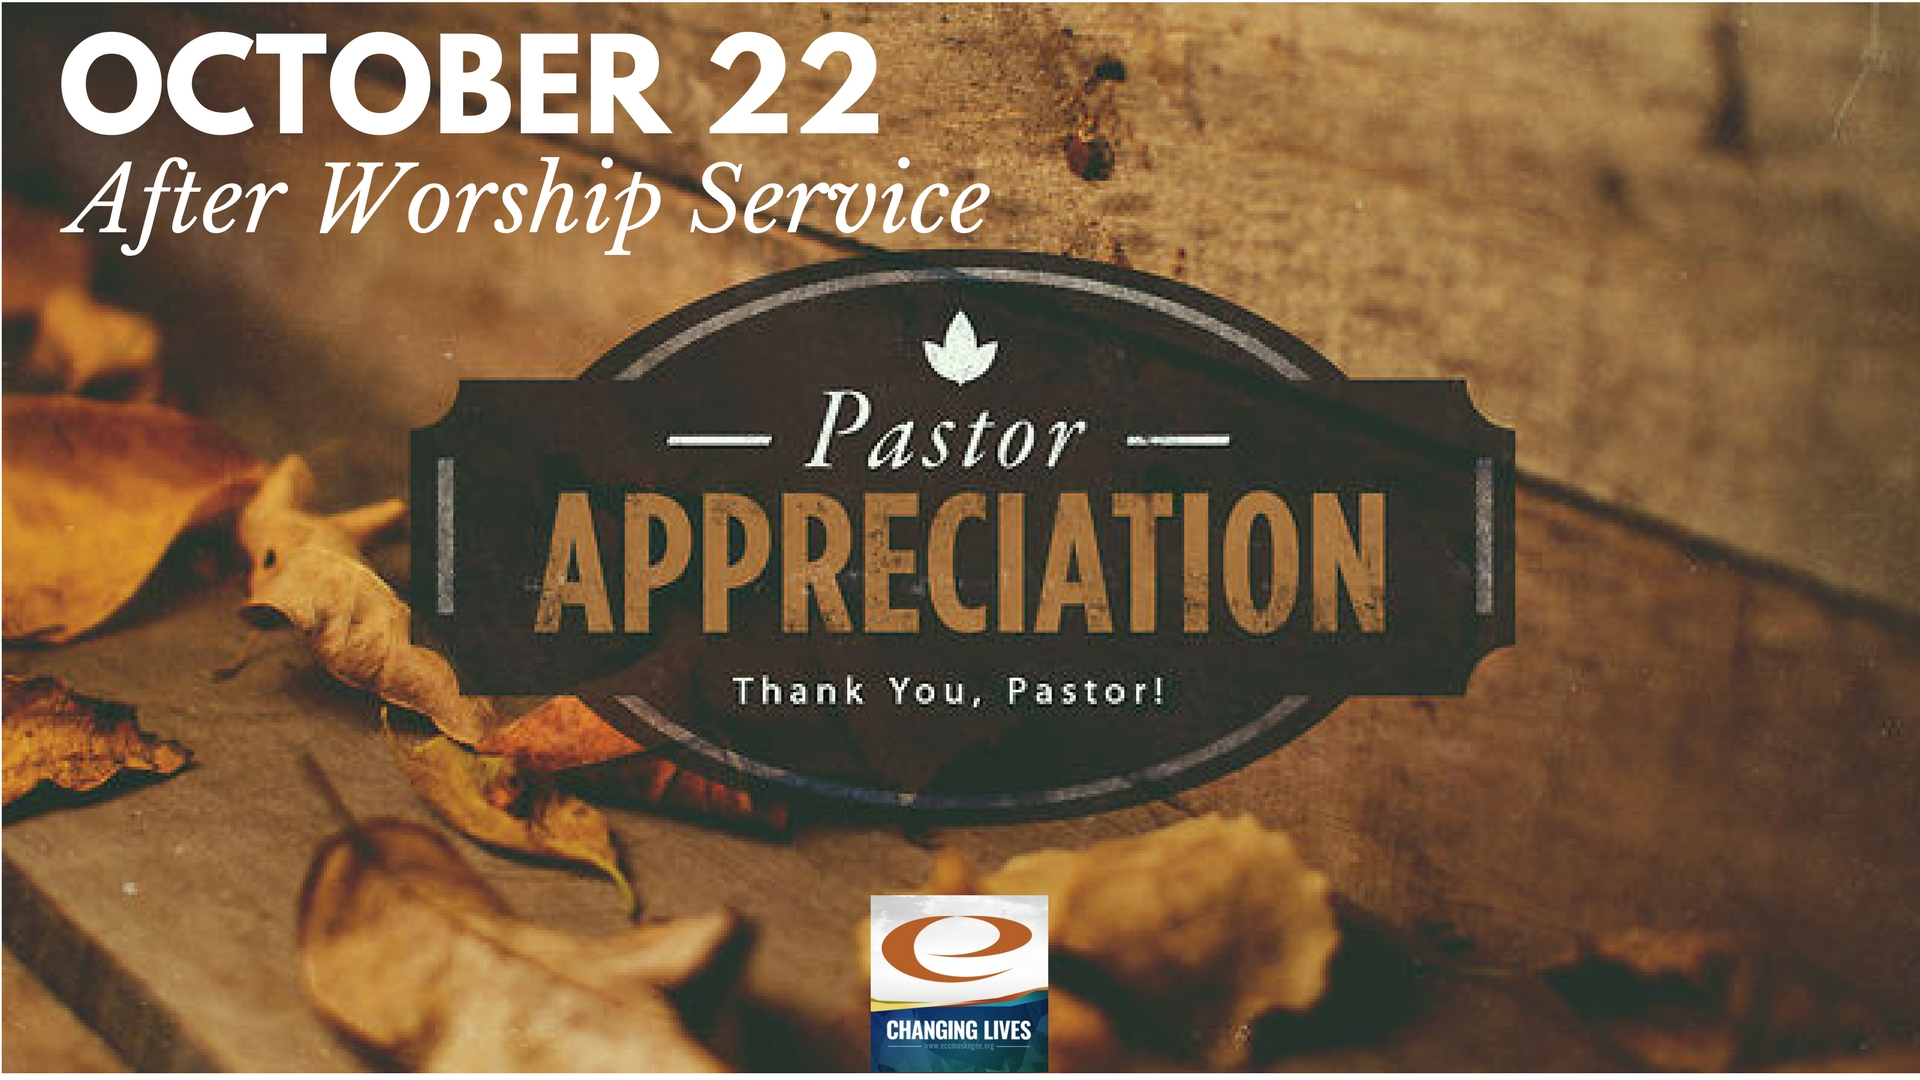 Pastor appreciation slide